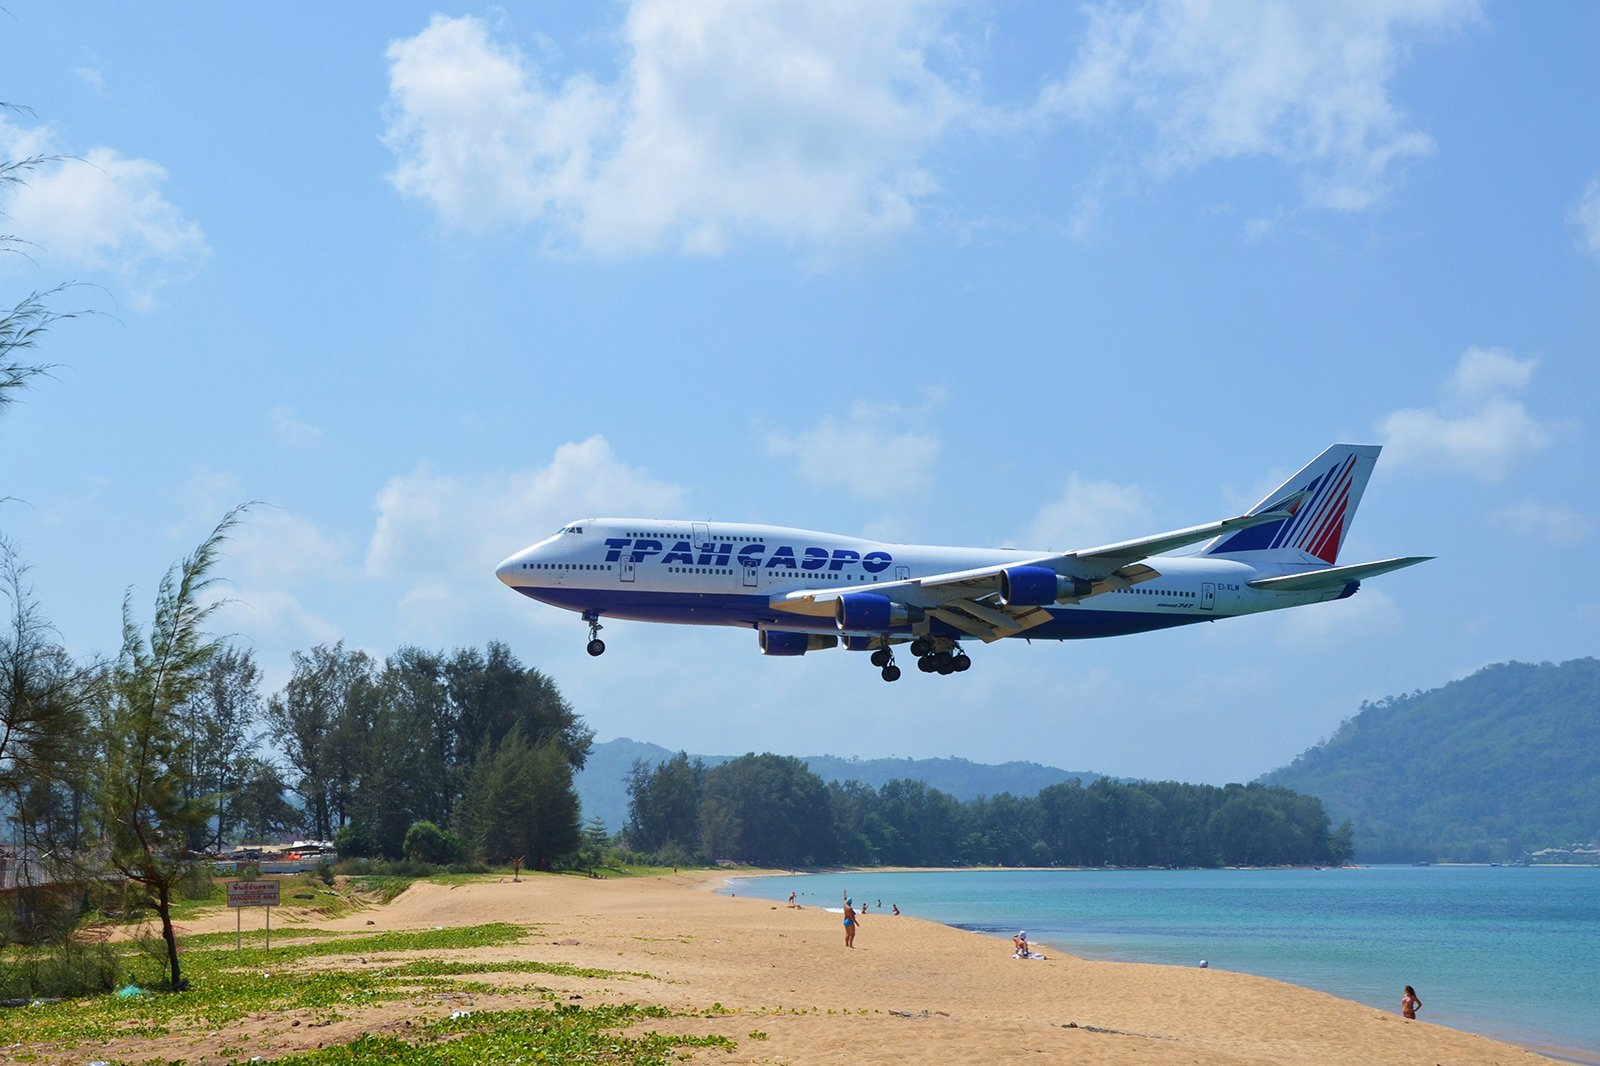 How to watch the plane landing in a glissade in Phuket